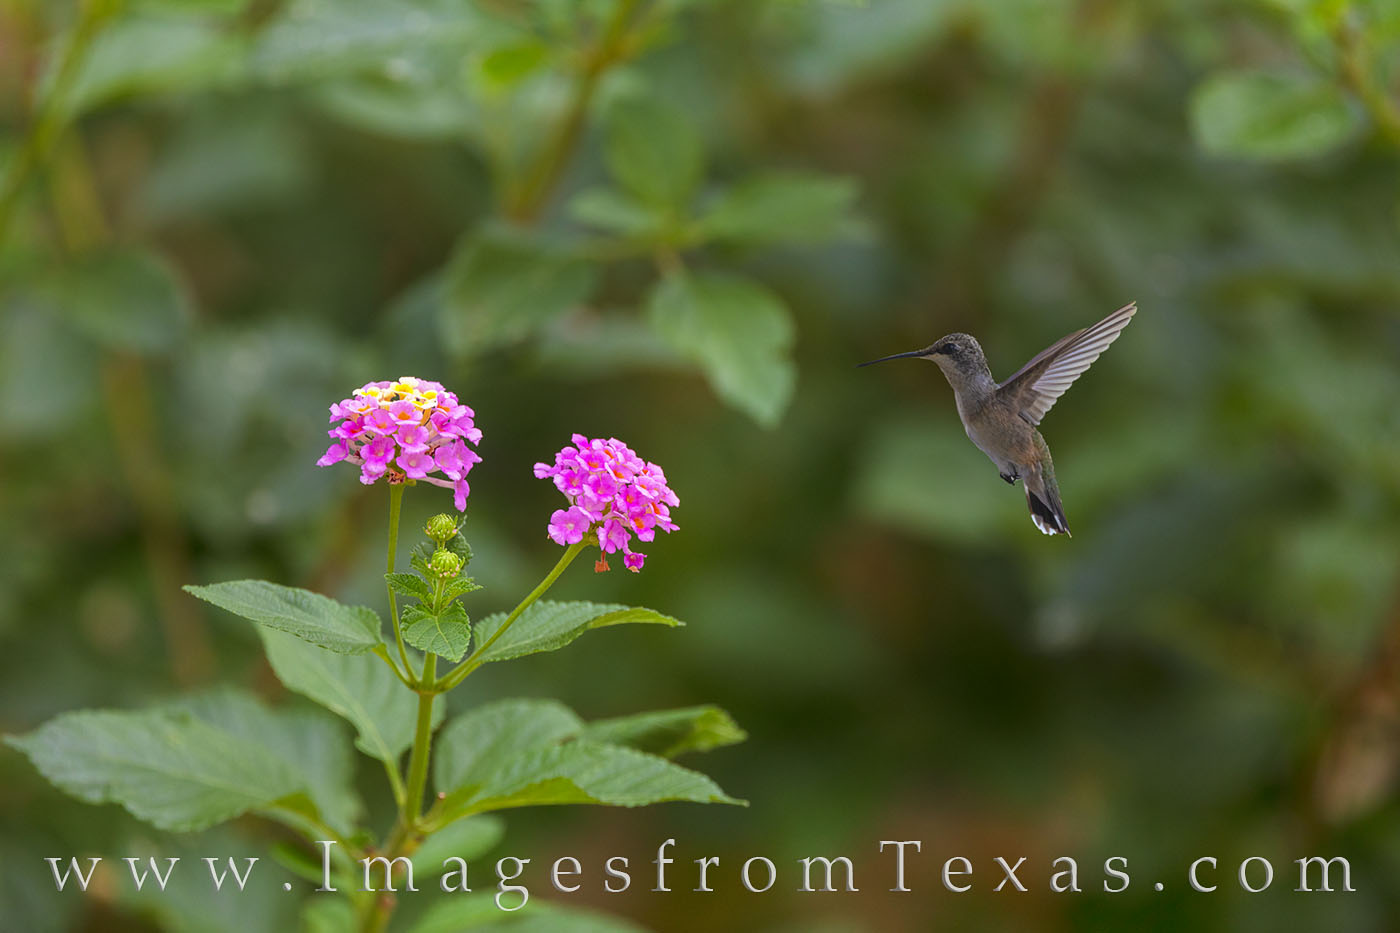 humingbirds, lantana, texas wildflowers, blooms, summer, hummers, birds, texas birds, texas hummingbirds, 400mm, photo